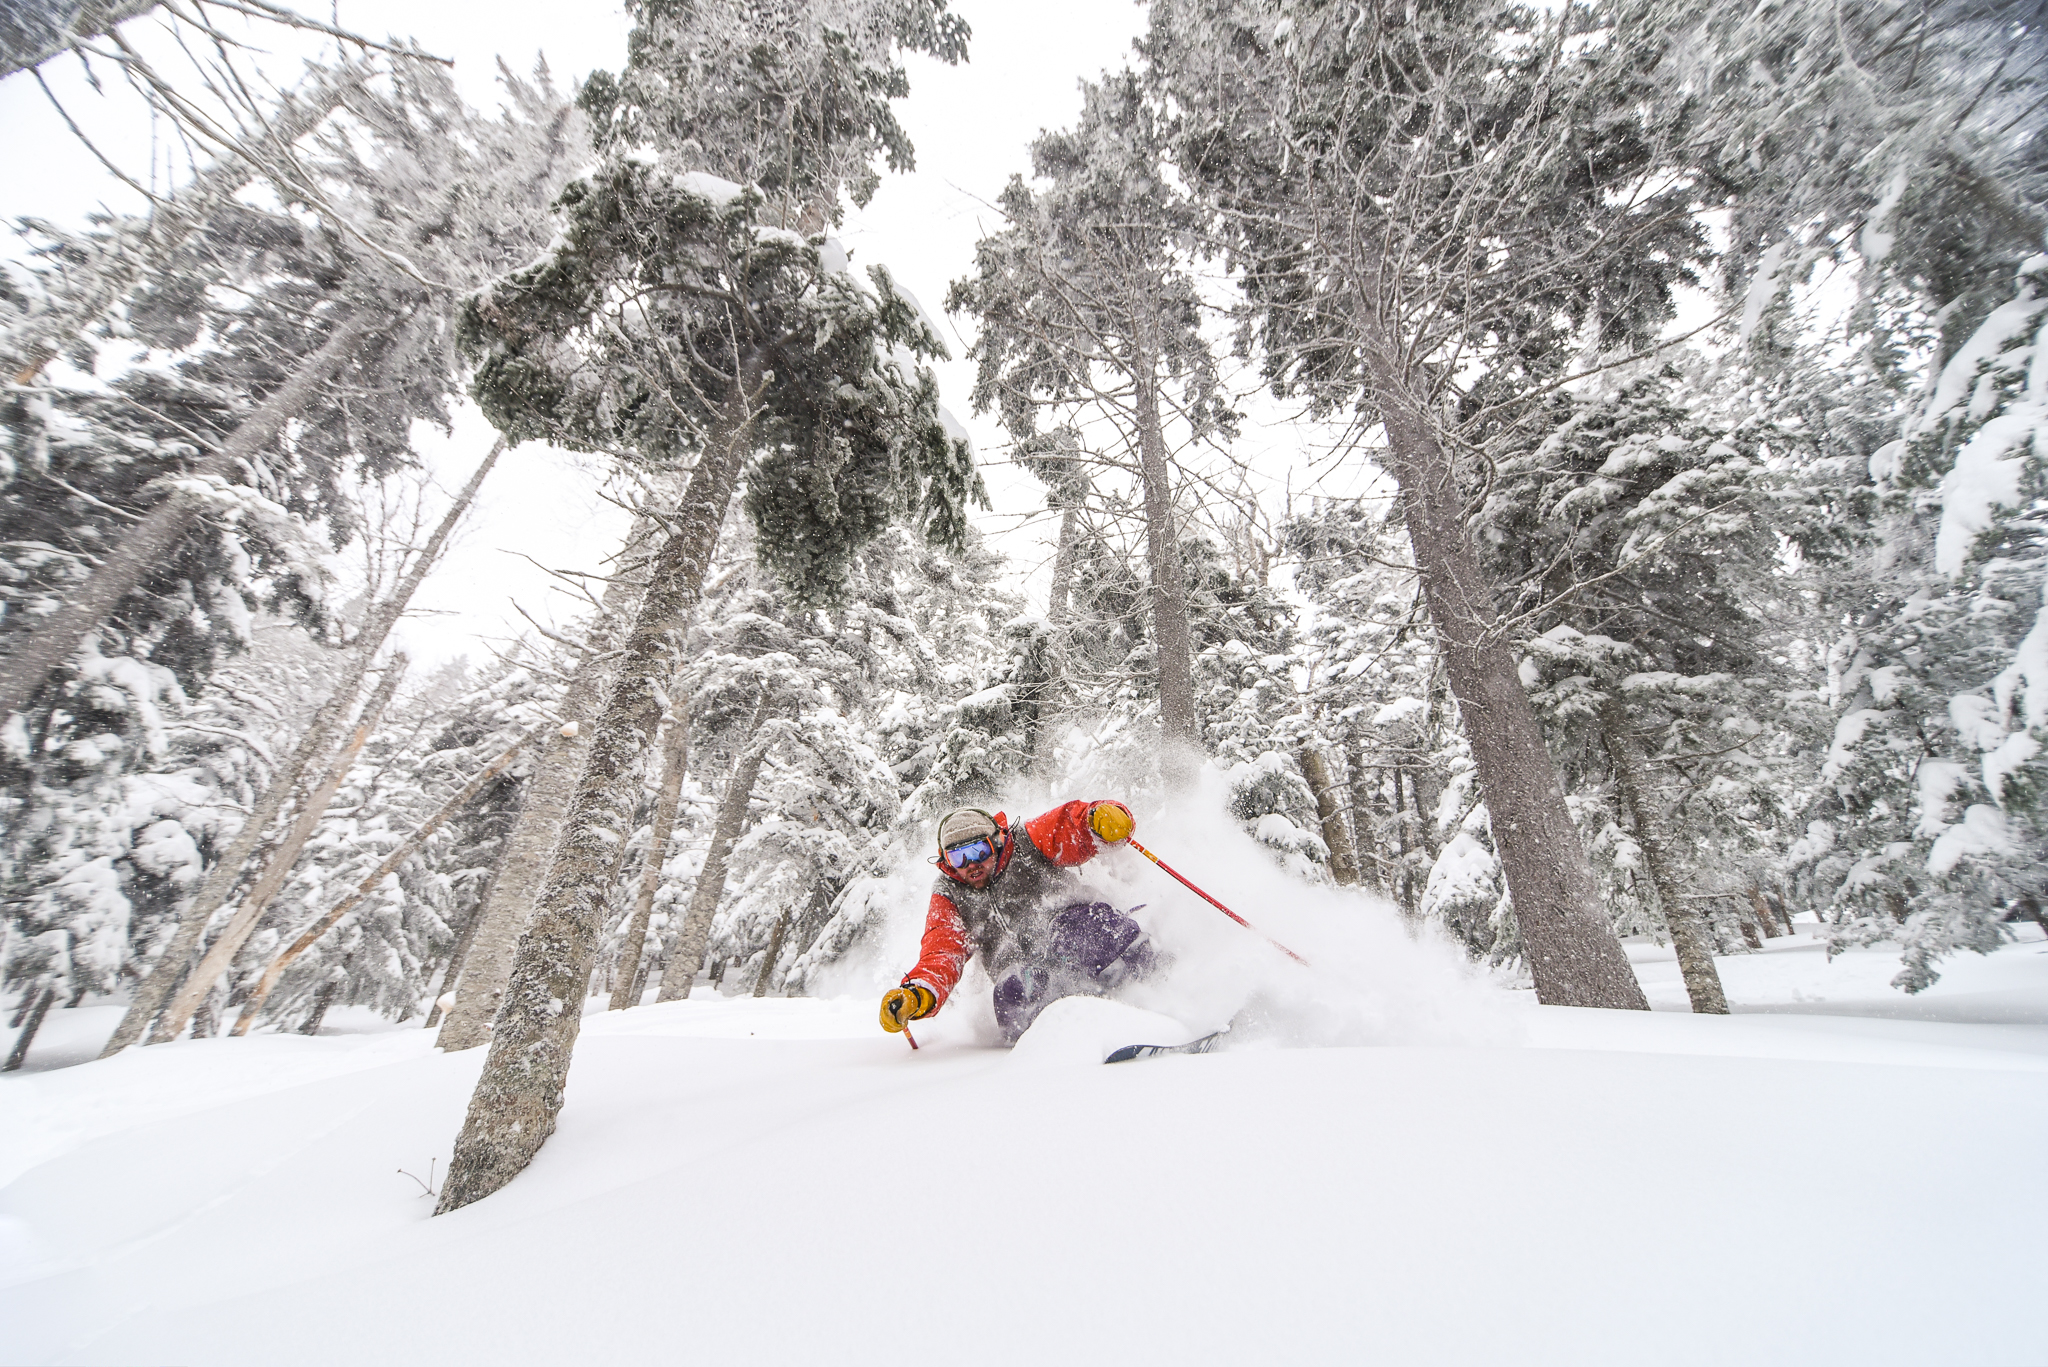 Brackett Basin & Burnt Mountain - Explore hand cut glades featuring both narrow lines and wider expanses. For easy access, Sugarloaf now offers a paid Cat skiing option! Hiking or skinning up is included in your day or season pass (or $10 by itself).